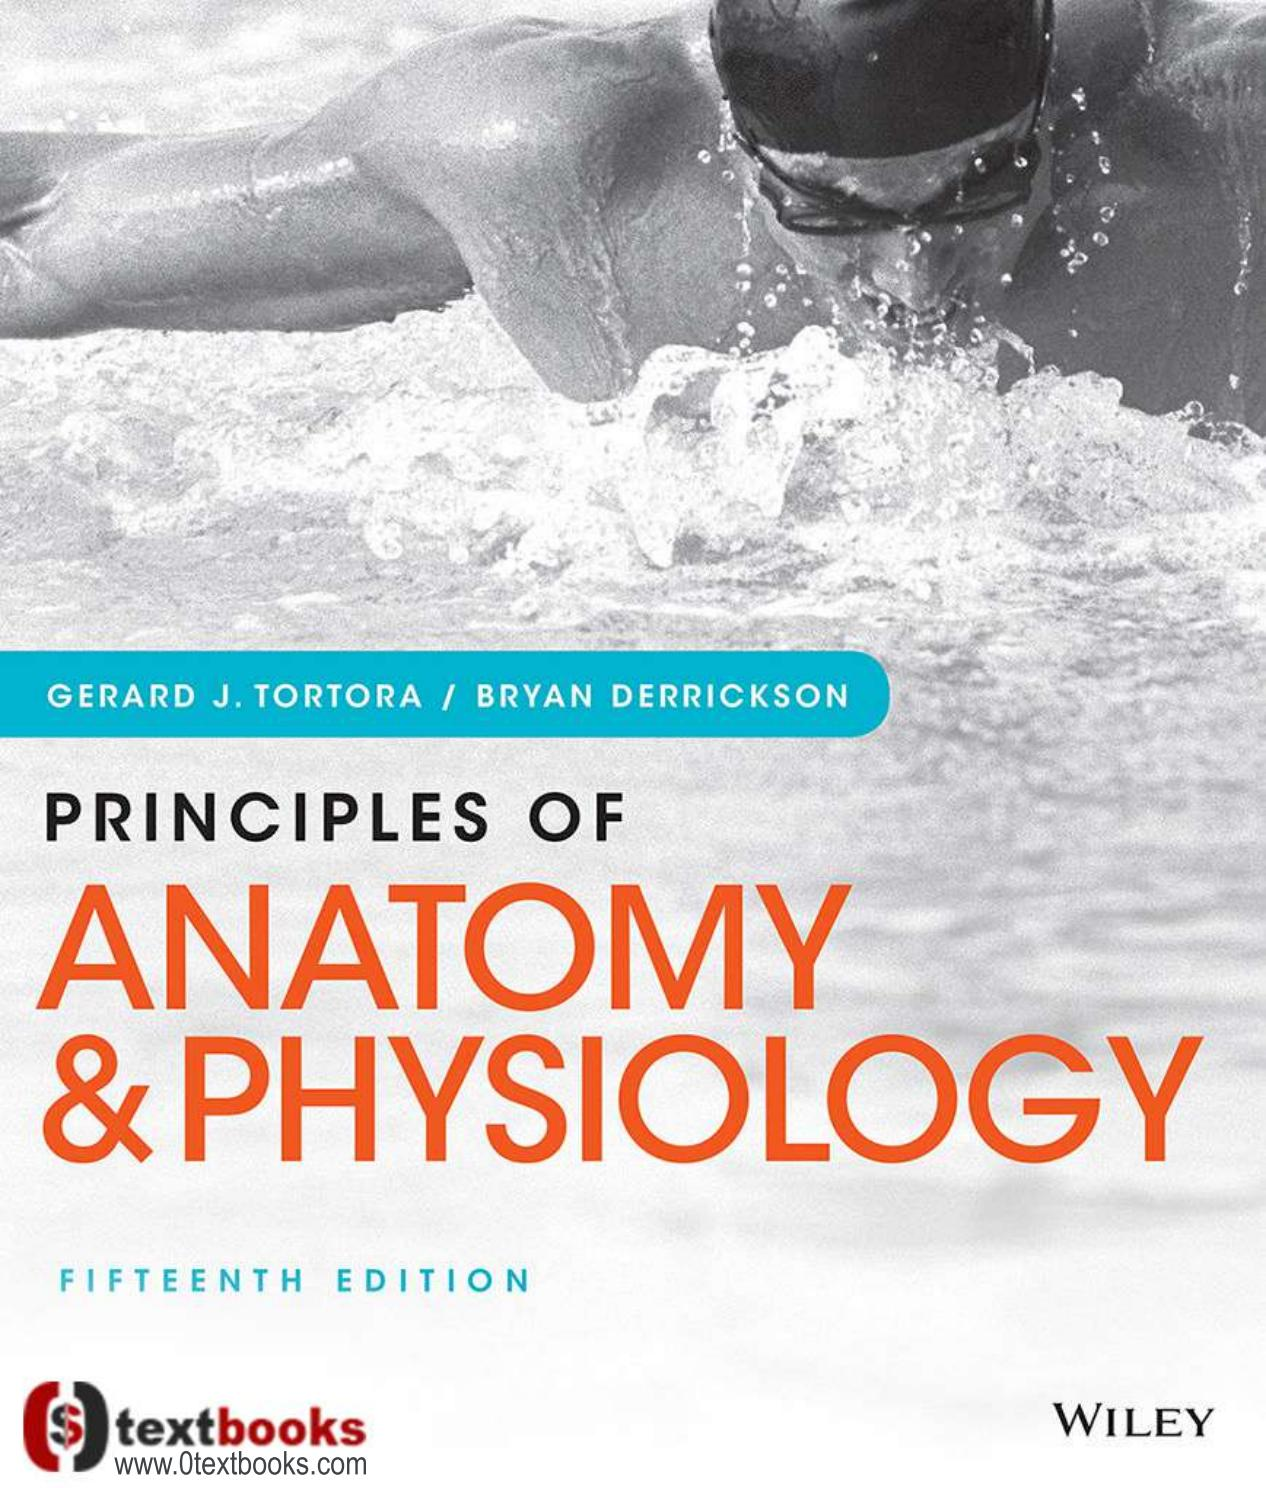 Principles of Anatomy & Physiology 15th Edition PDF by 0textbooks ...